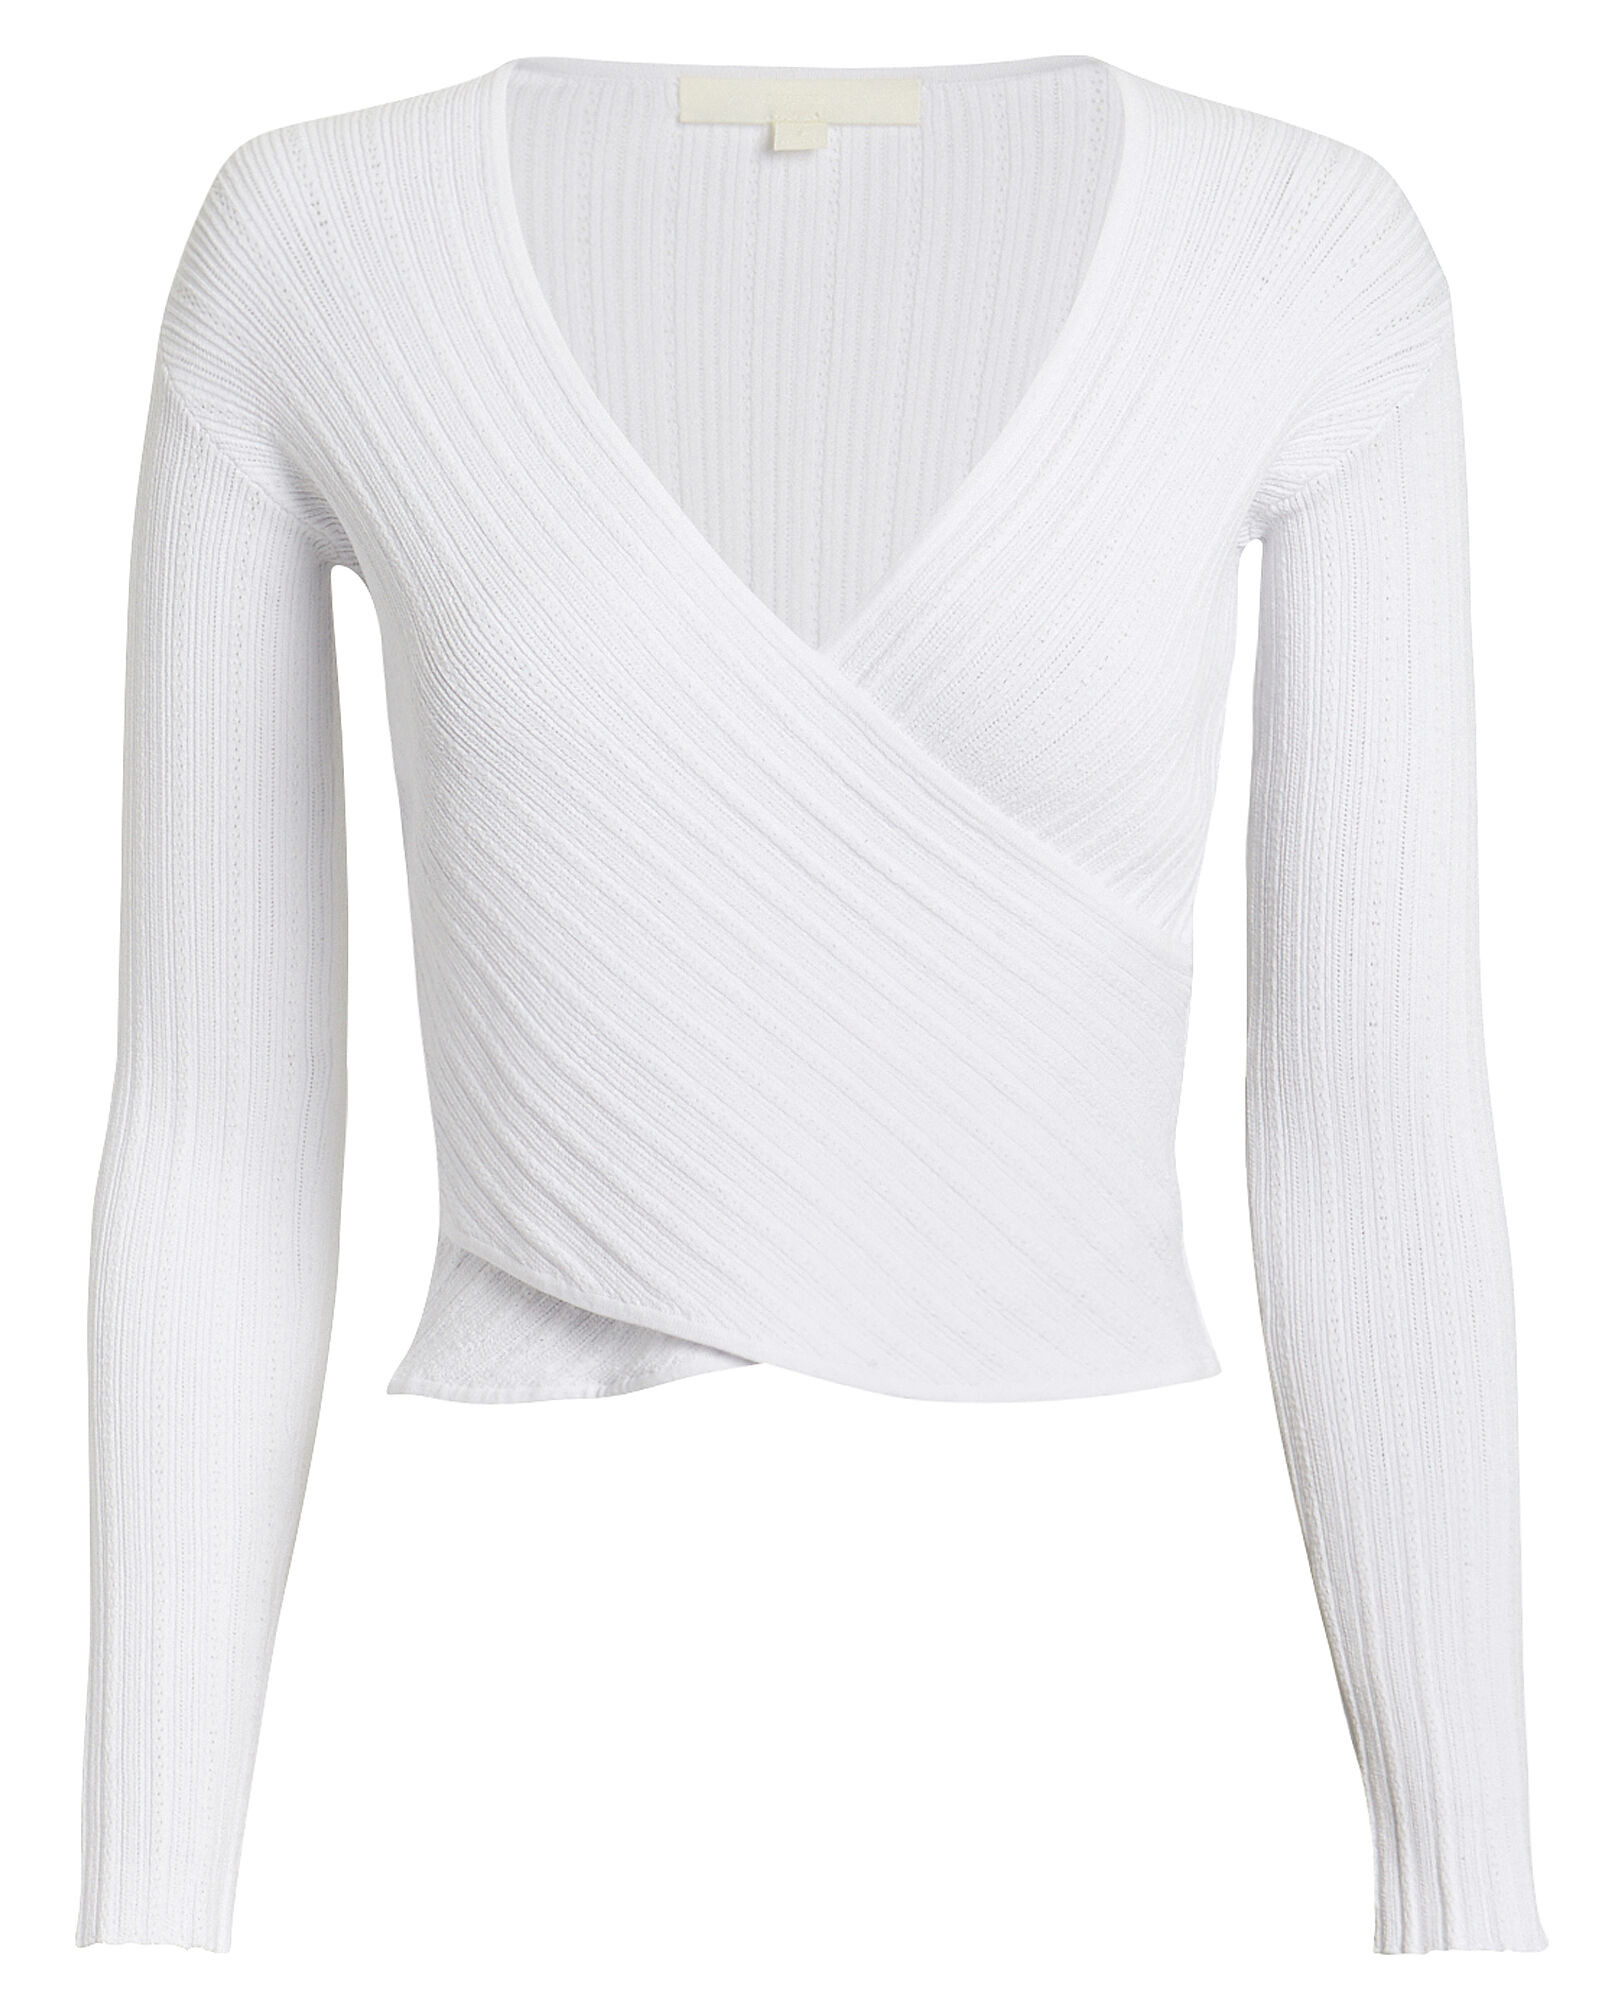 Ribbed Cross Front Top, WHITE, hi-res